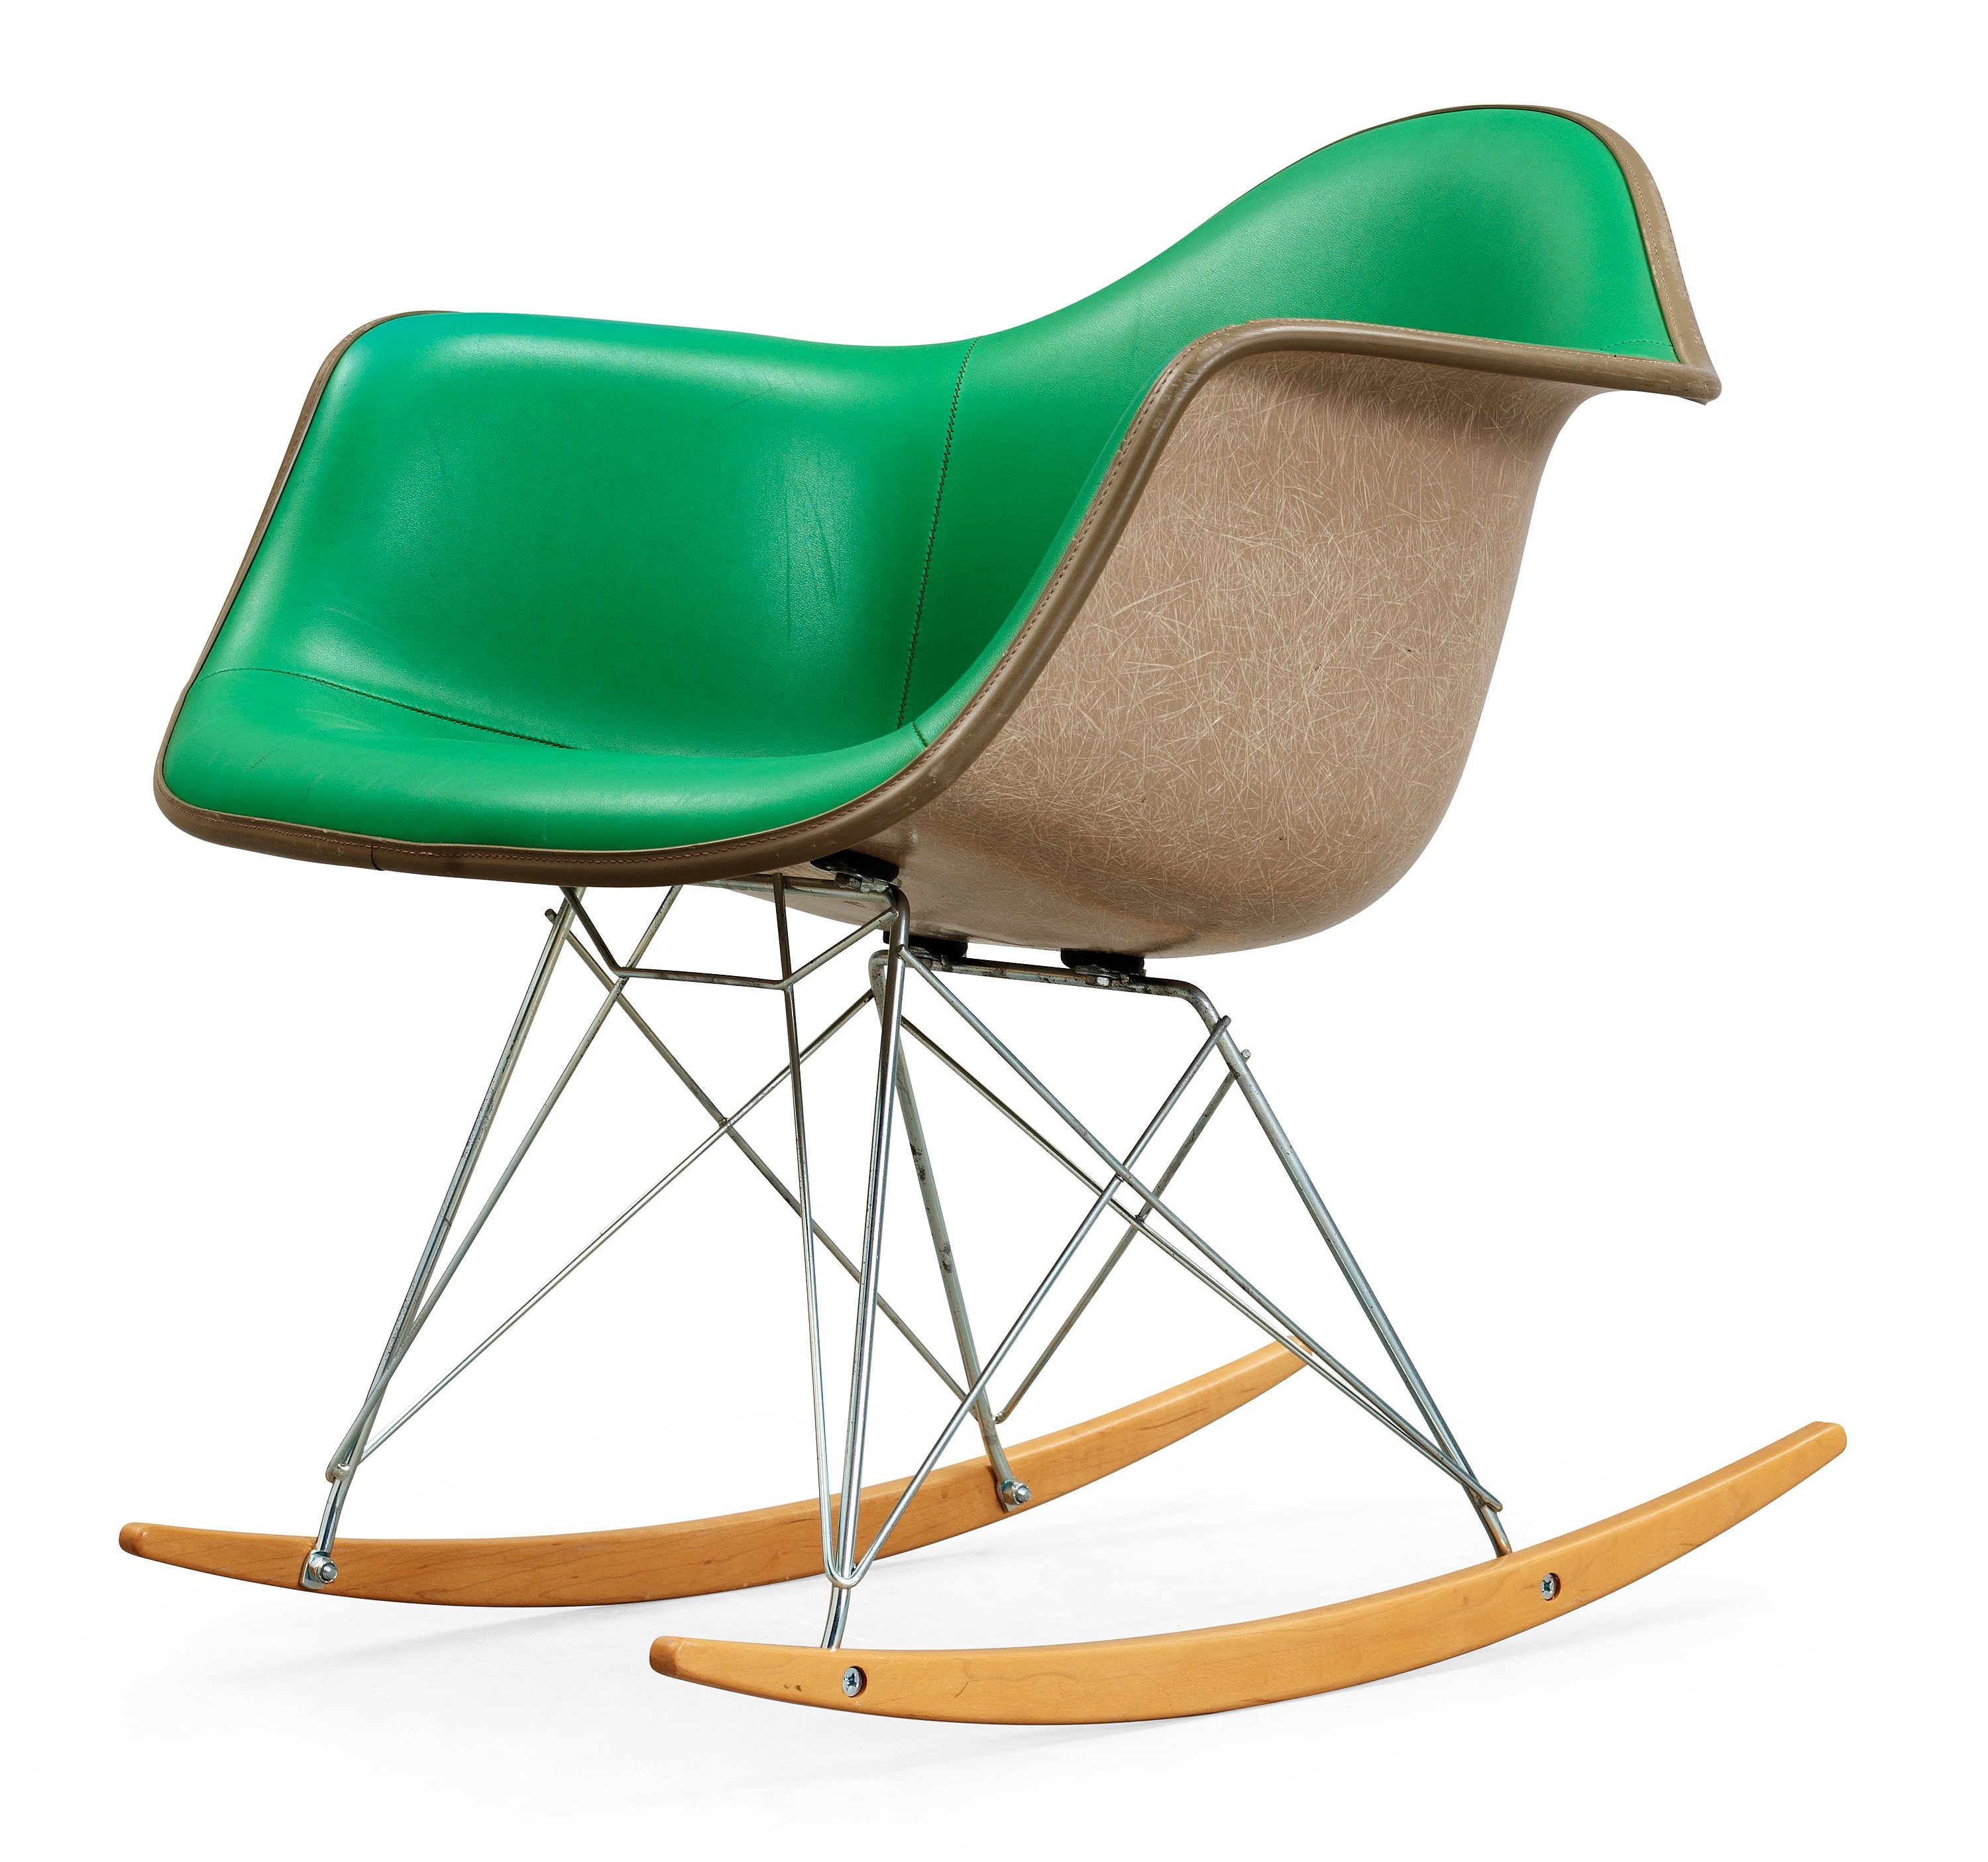 Strange A Charles Ray Eames Rocking Chair Rar Herman Miller Unemploymentrelief Wooden Chair Designs For Living Room Unemploymentrelieforg